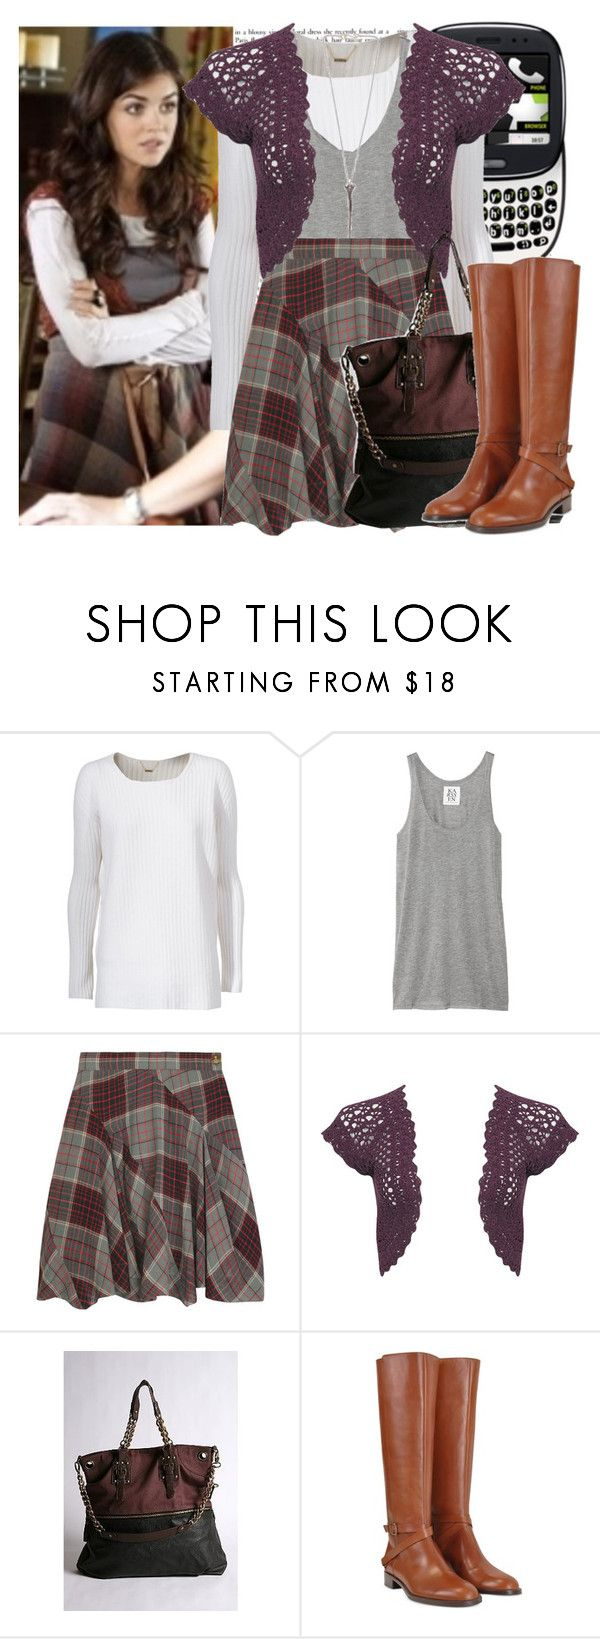 """""""Aria-Reality bites me"""" by elenadobrev90 ❤ liked on Polyvore featuring Microsoft, The Row, Zoe Karssen, Vivienne Westwood Red Label, Forever 21, Deena & Ozzy, Fratelli Rossetti and Lauren Wolf"""